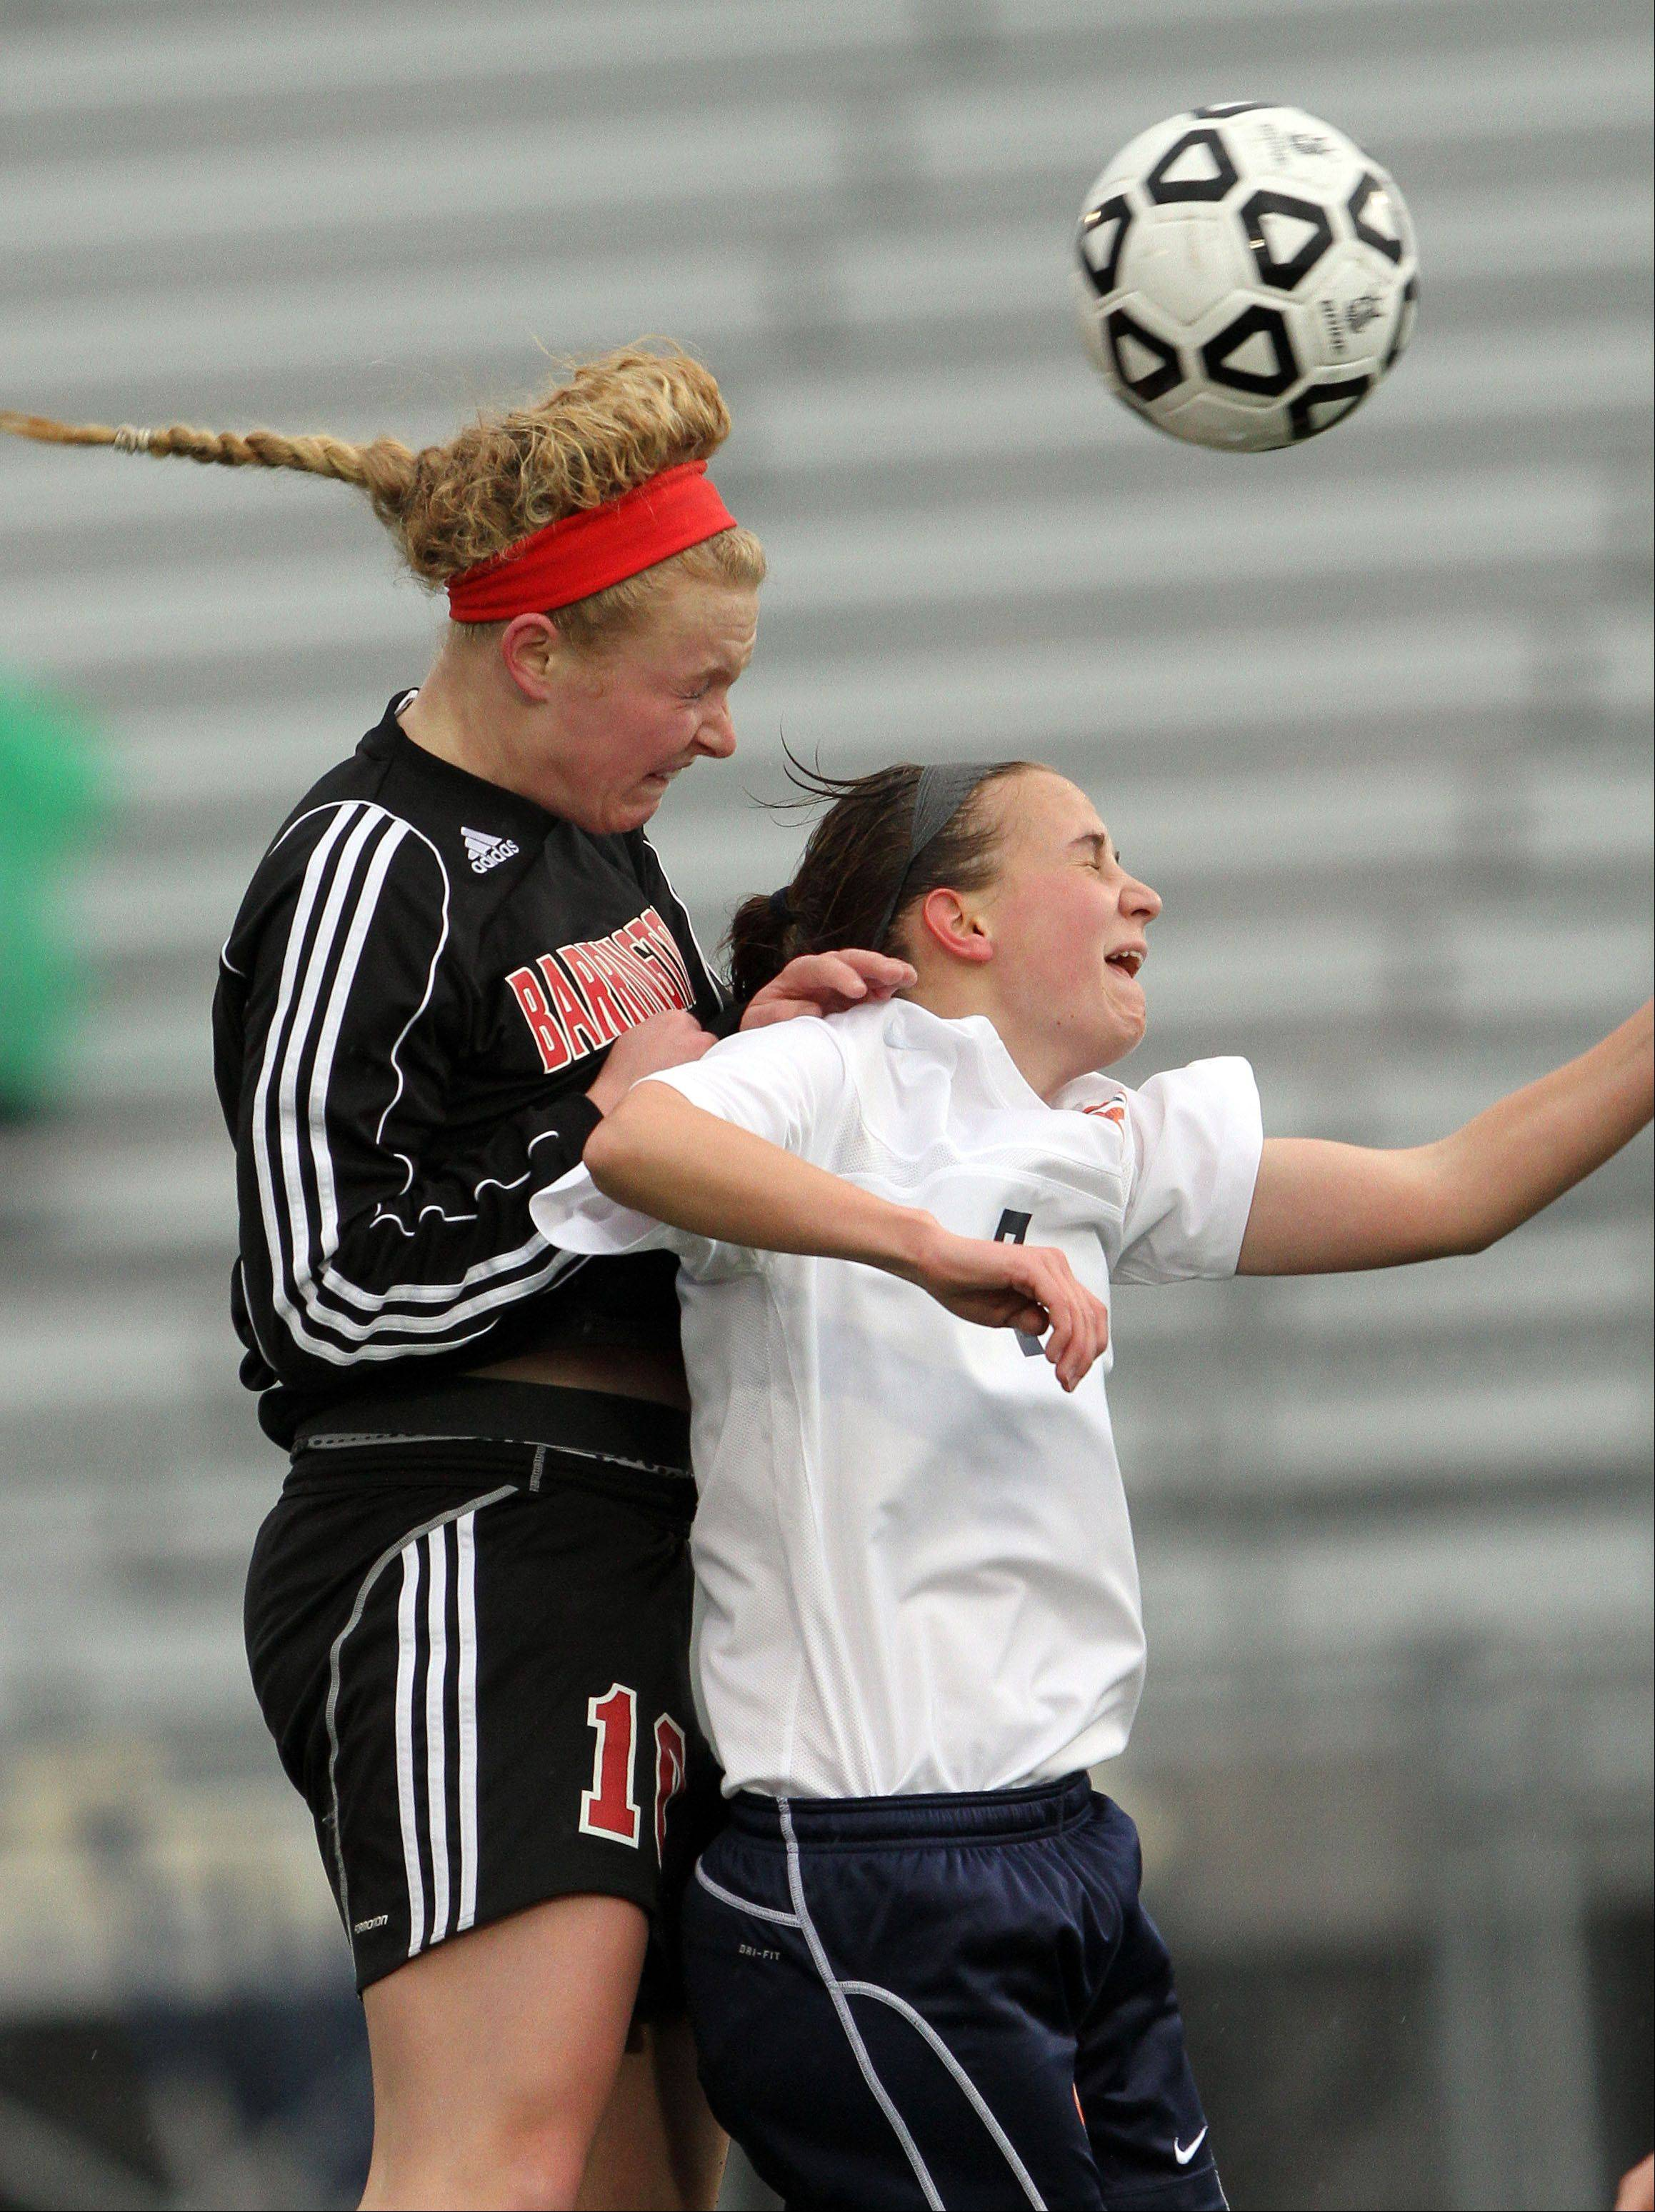 Barrington's Molly Pfeiffer, left, and Buffalo Grove's Jessica Kovach go up for a header Monday night at Buffalo Grove.